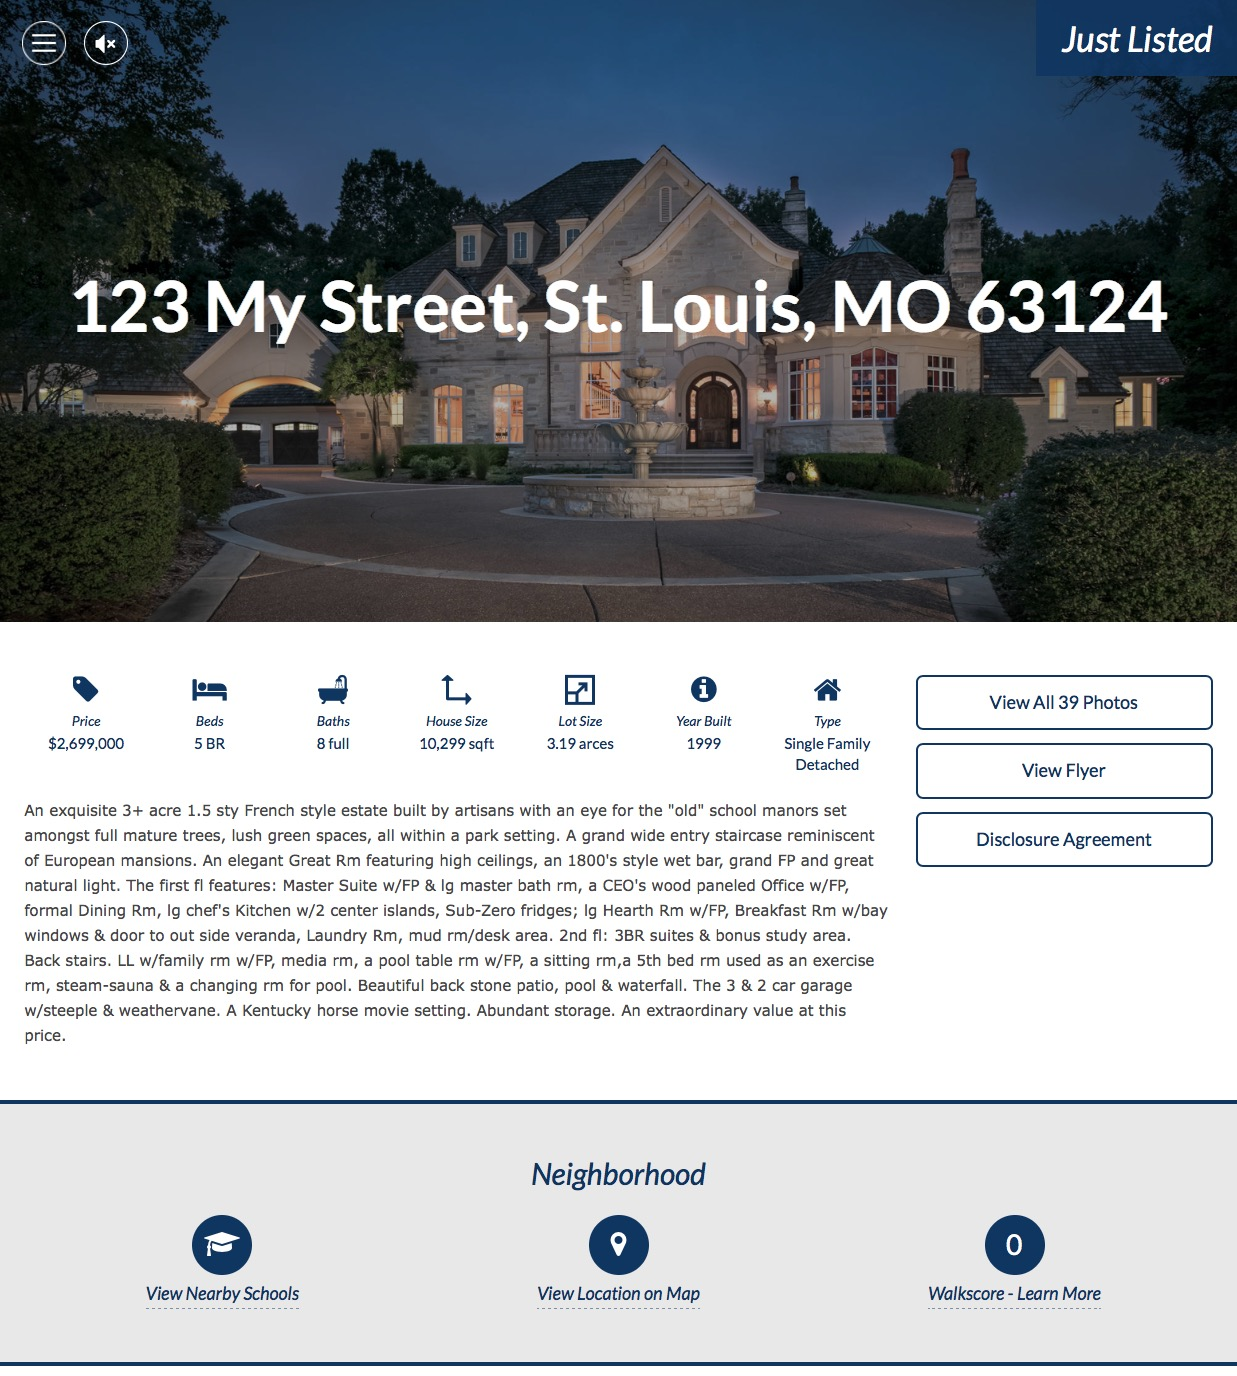 St Louis Residential Real Estate Property Website